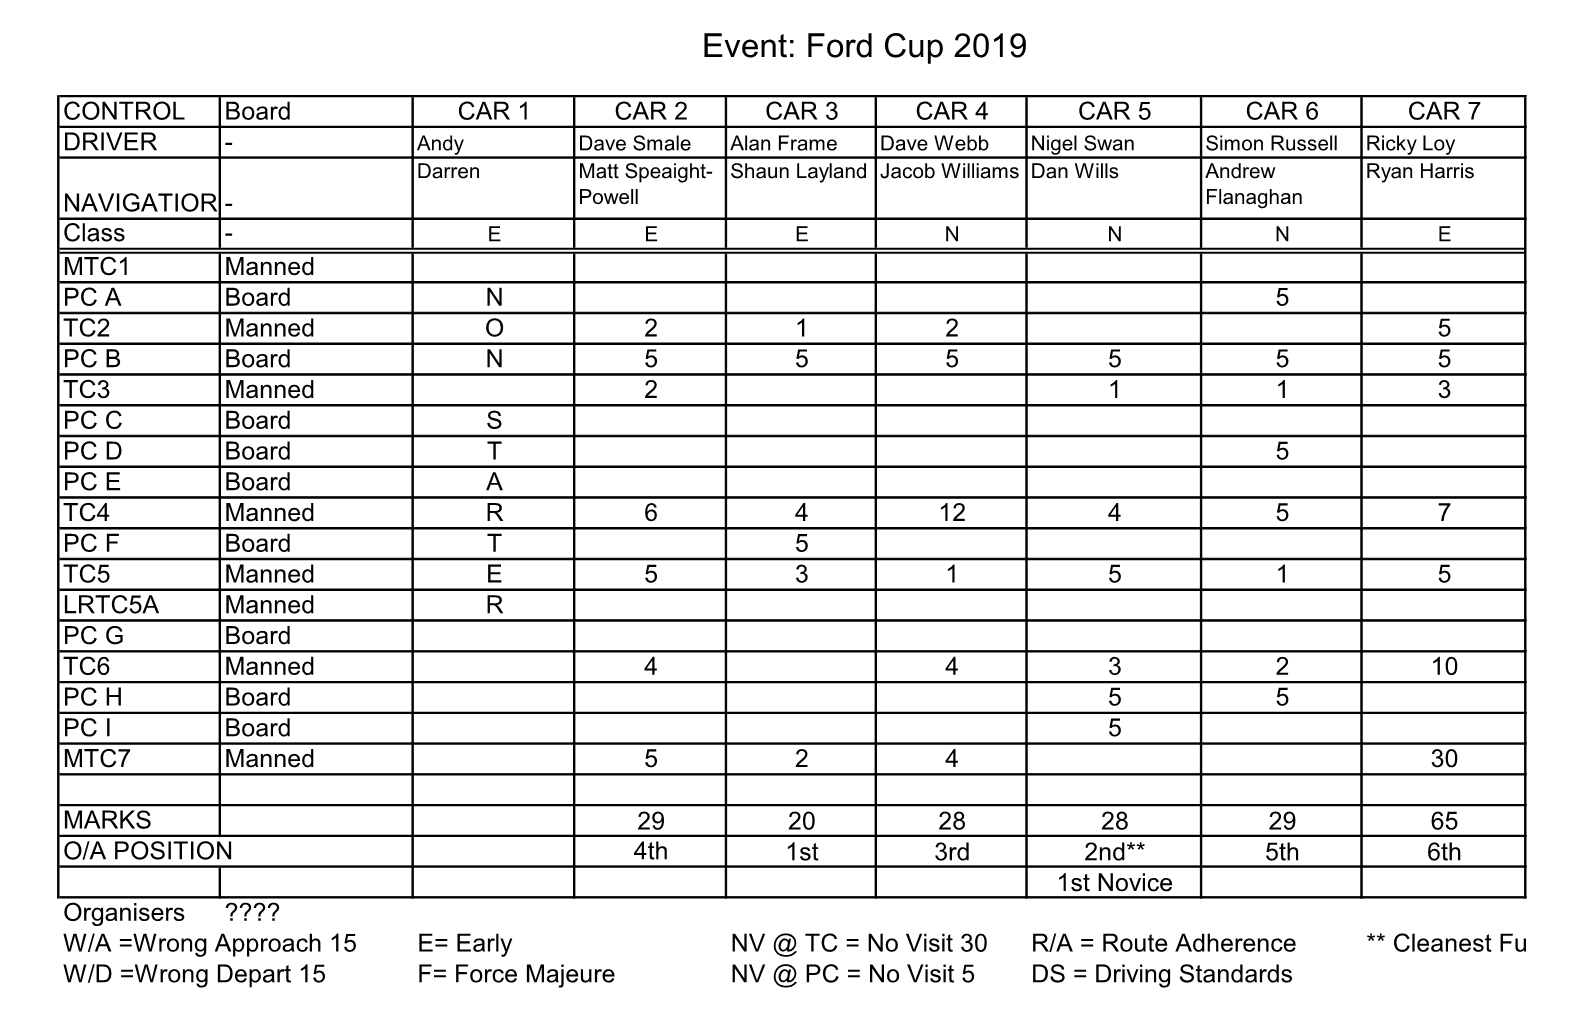 12 Car Ford Cup Results